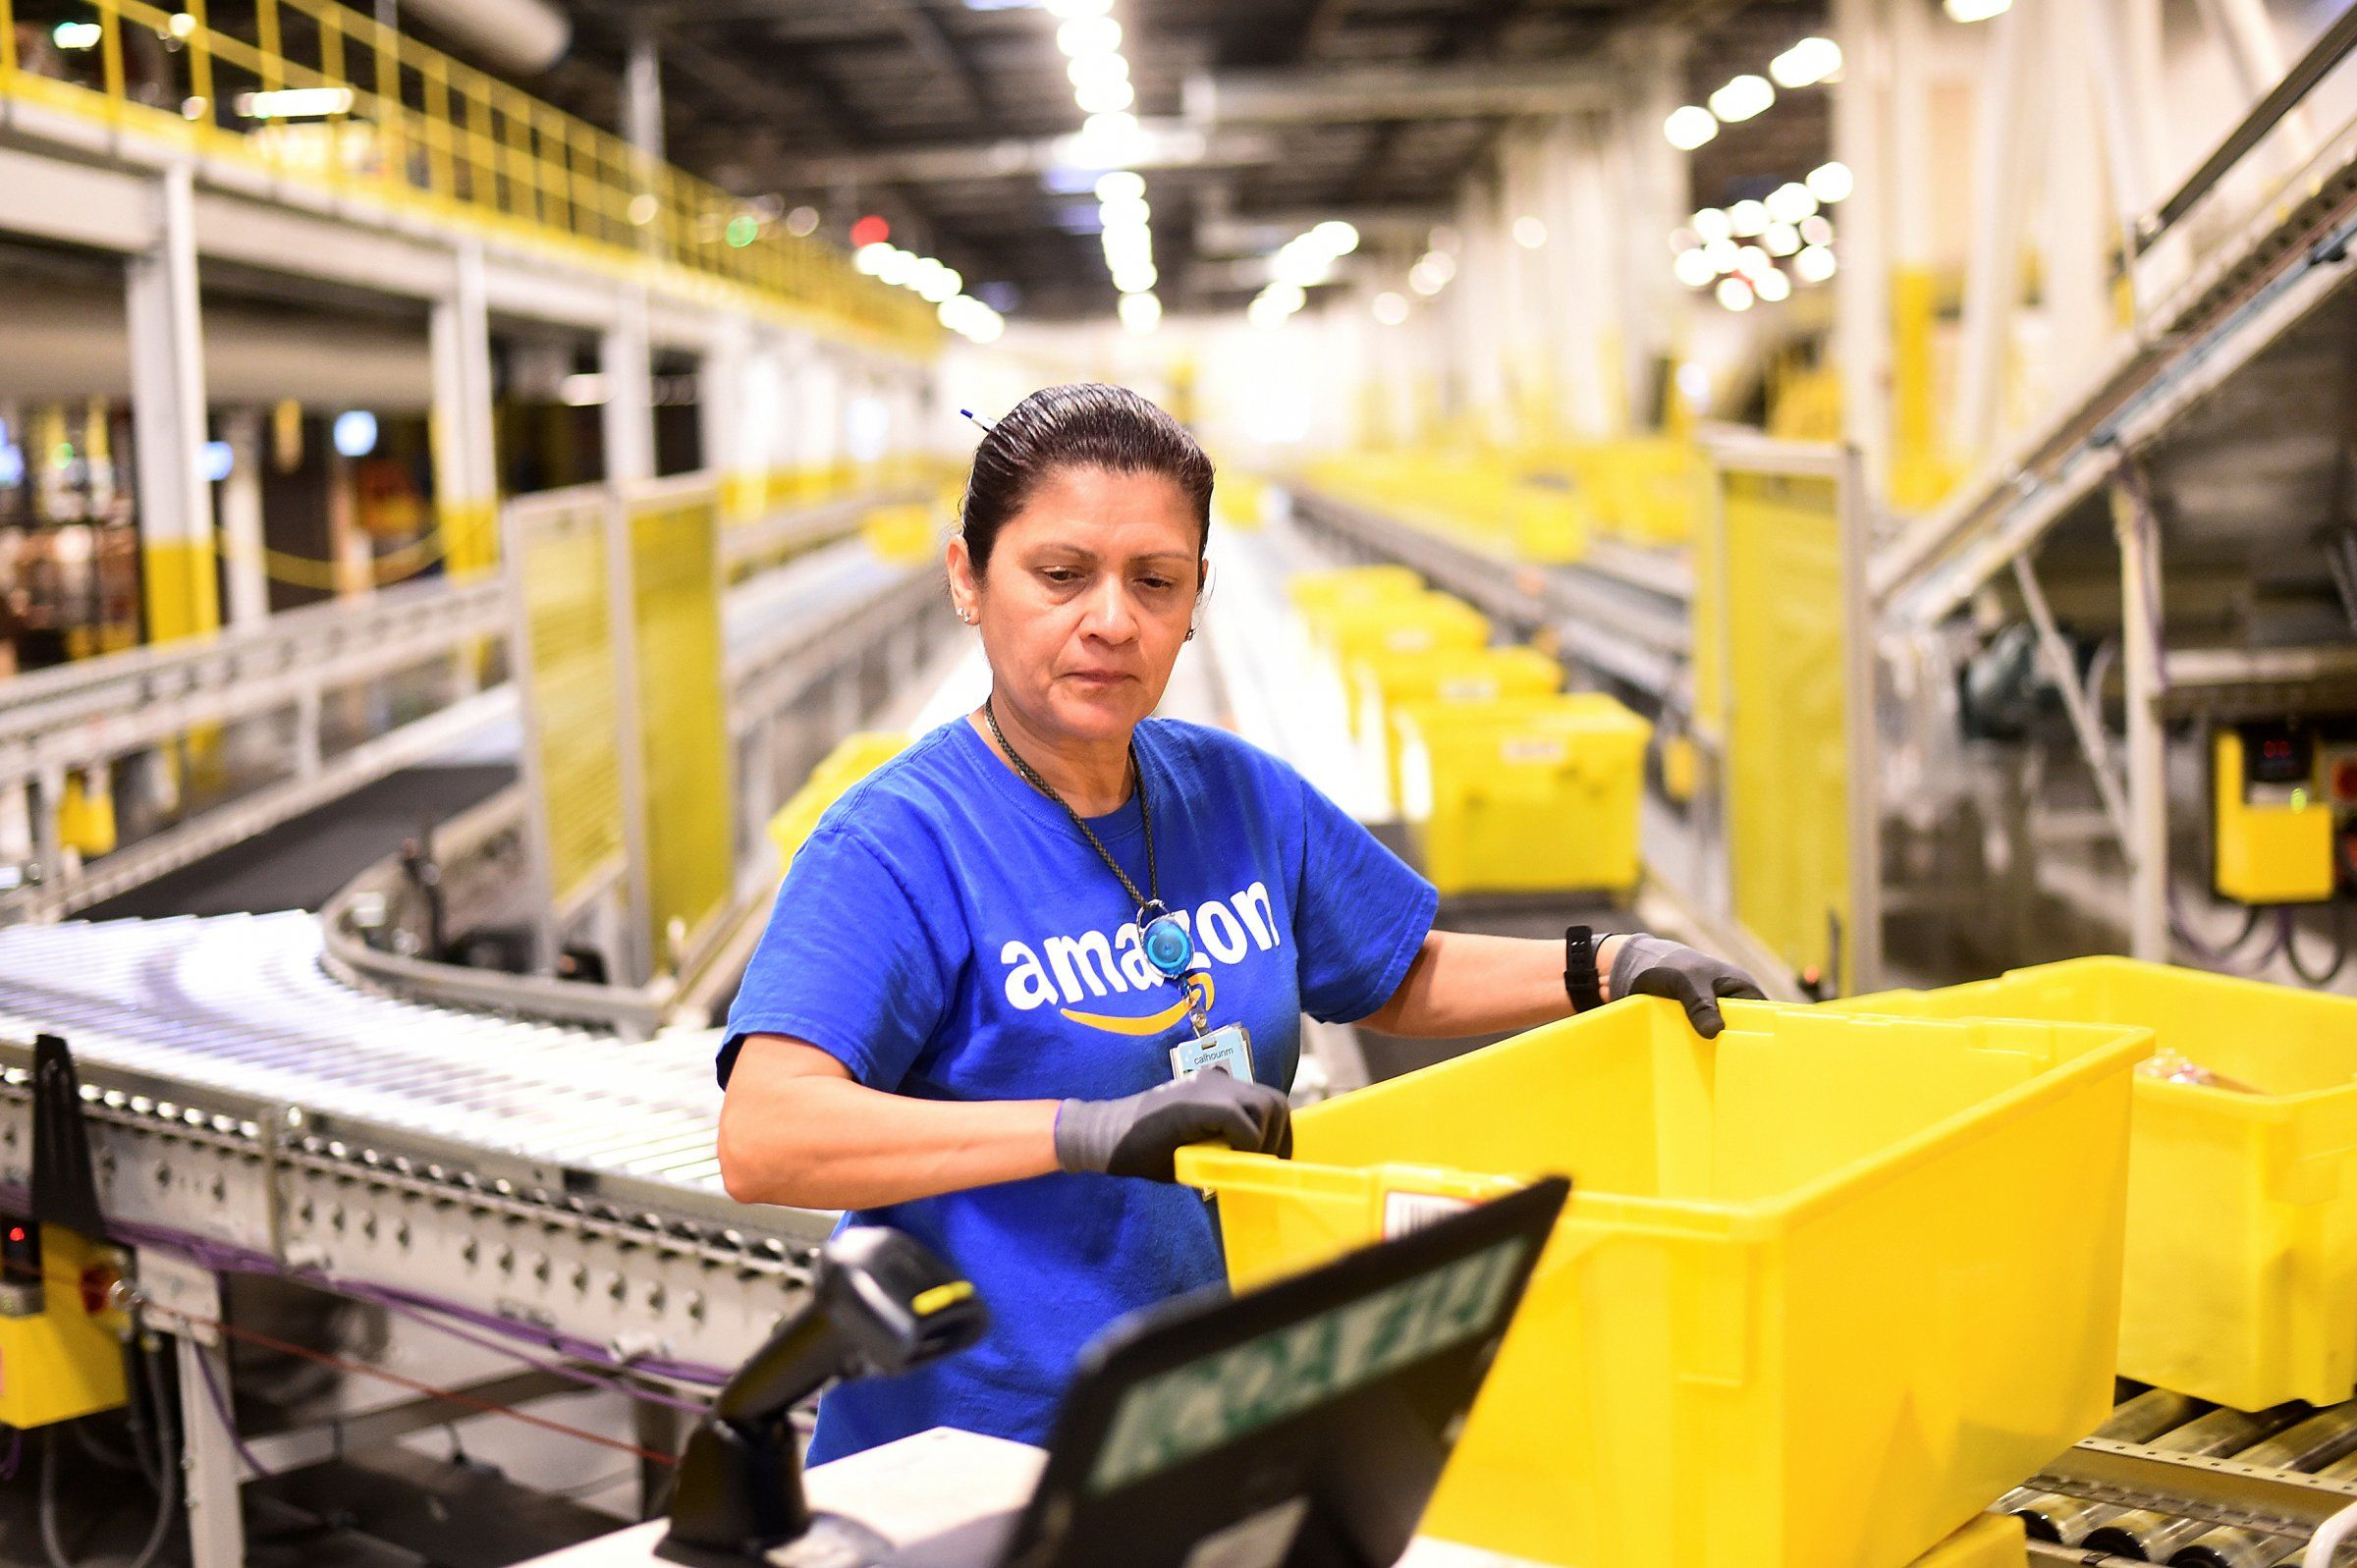 Amazon S Wage Hike Is Not All Roses For Its Workers Amazon